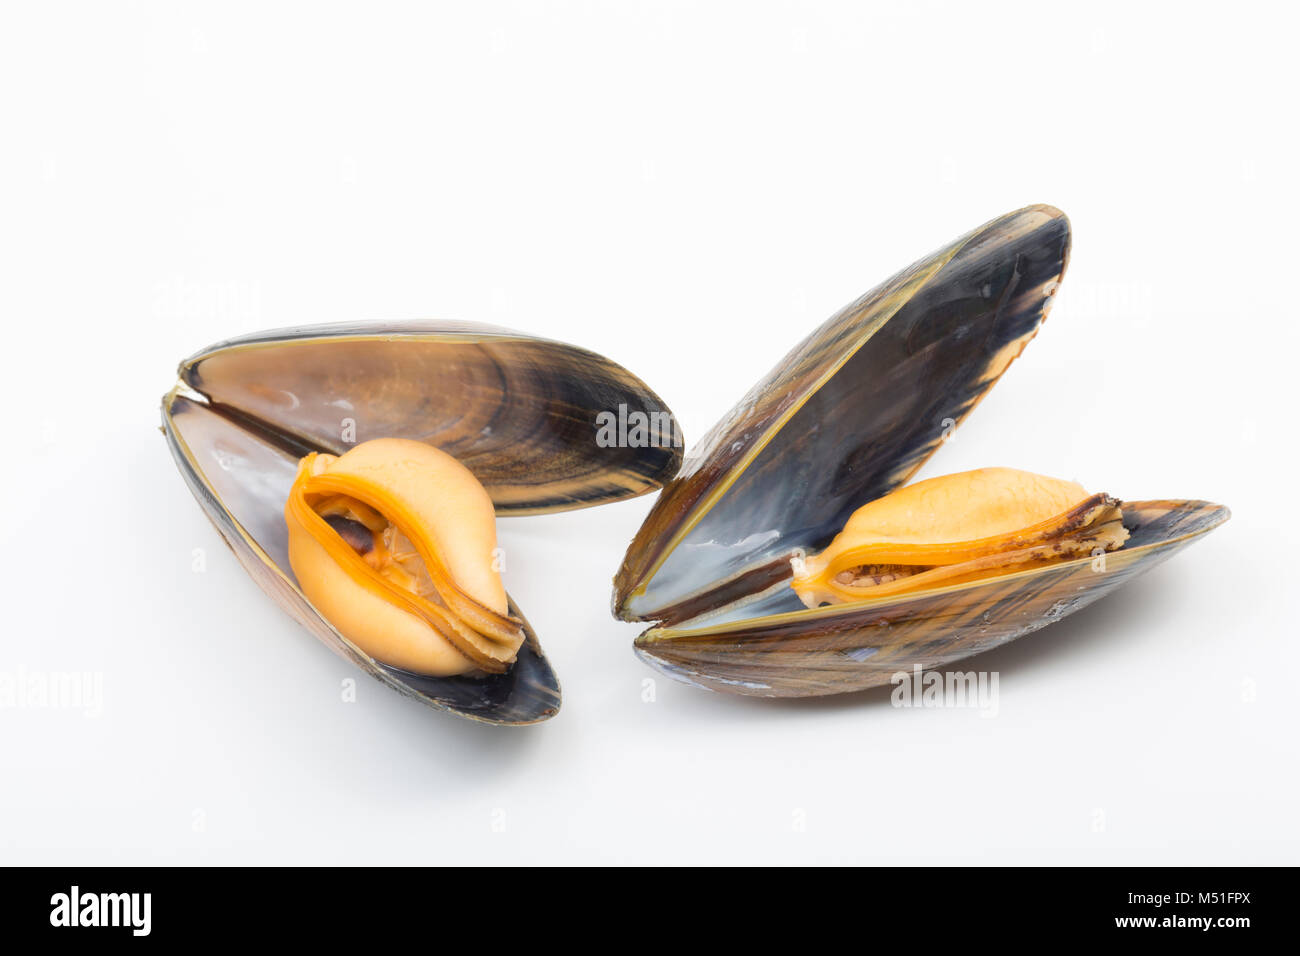 Cooked, rope-grown mussels, Mytilus edulis, bought from a supermarket. England UK GB - Stock Image